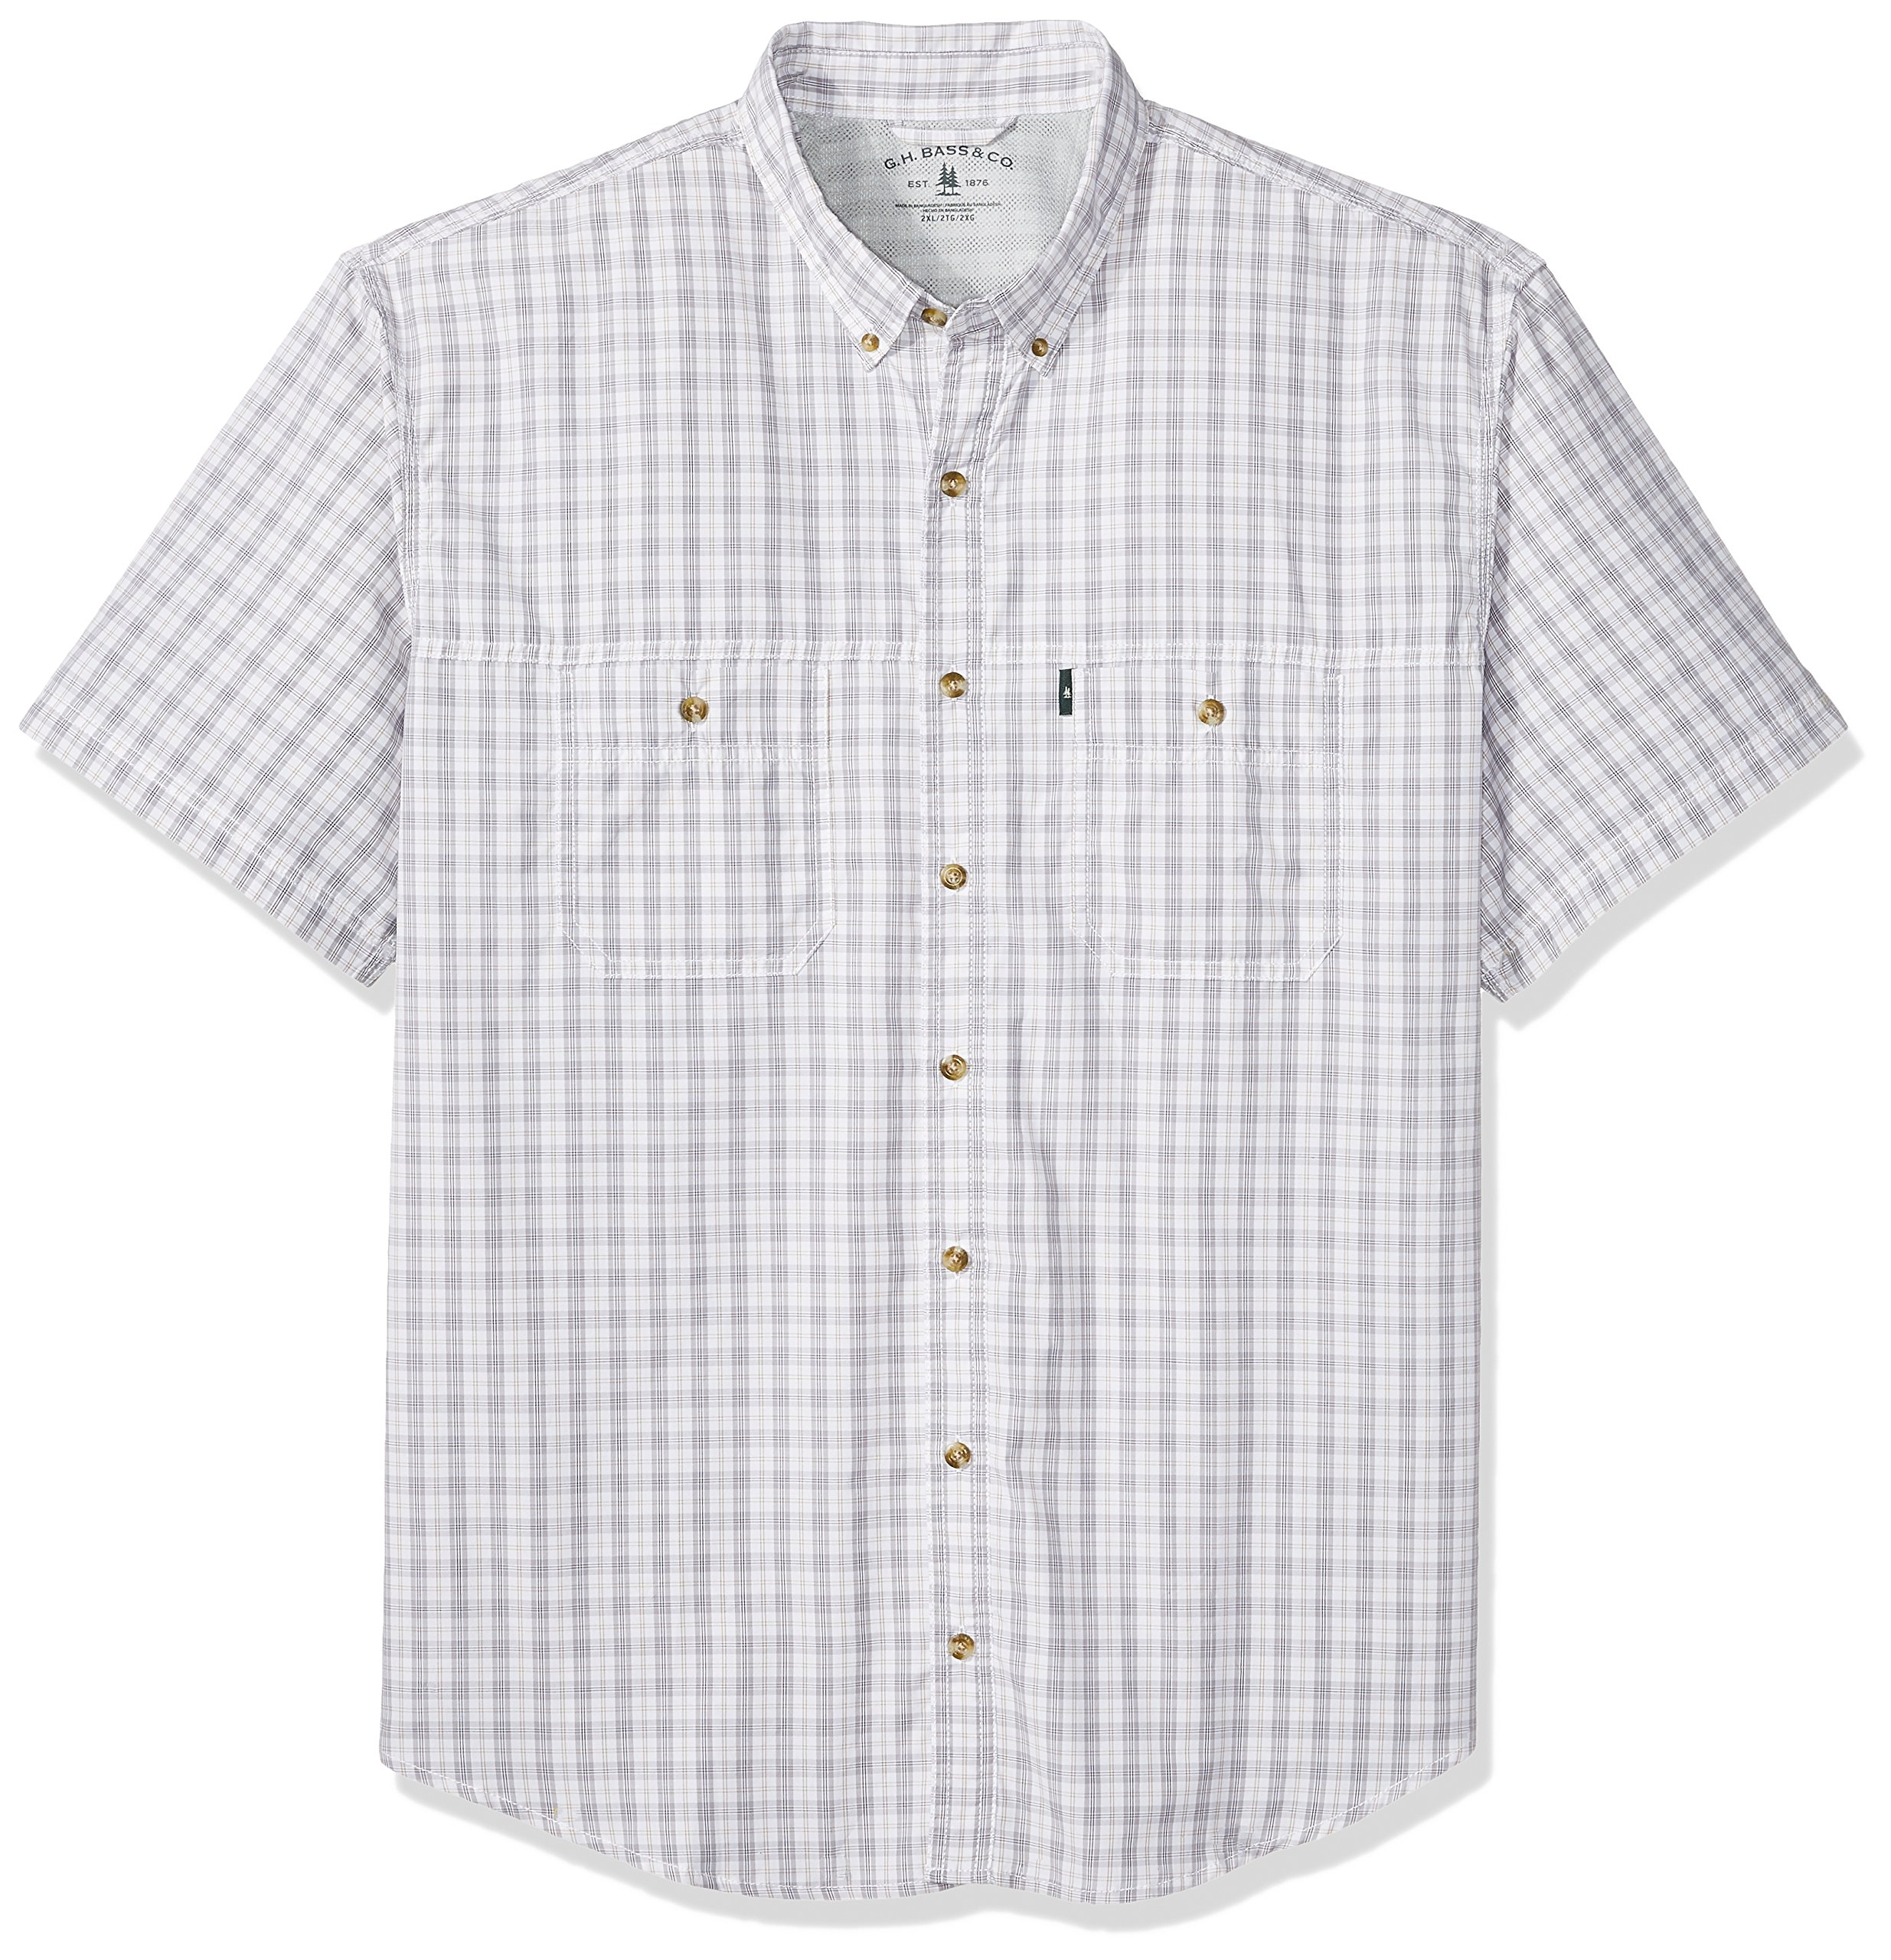 5bdff834e81 Galleon - G.H. Bass & Co. Men's Size Big And Tall Explorer Short Sleeve  Button Down Fishing Shirt, Legacy Bright White S2018, 3X-Large